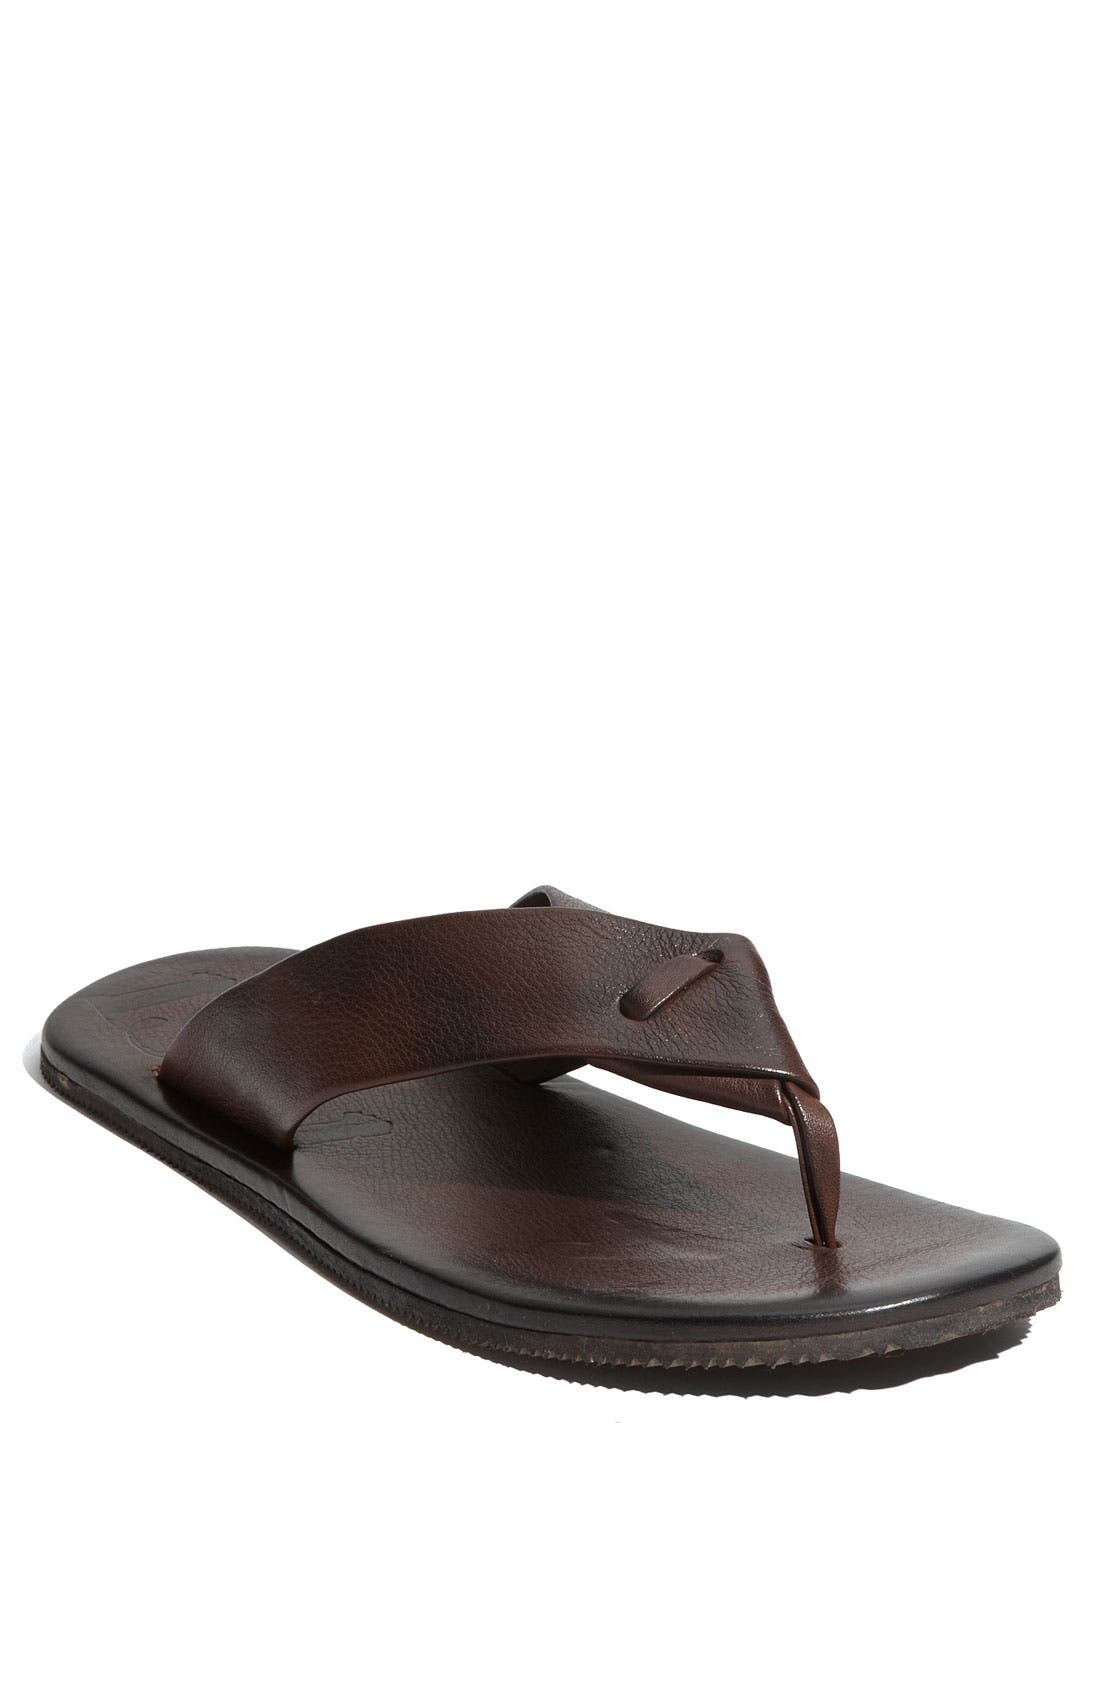 Alternate Image 1 Selected - 1901 'Breeze' Flip Flop (Men)